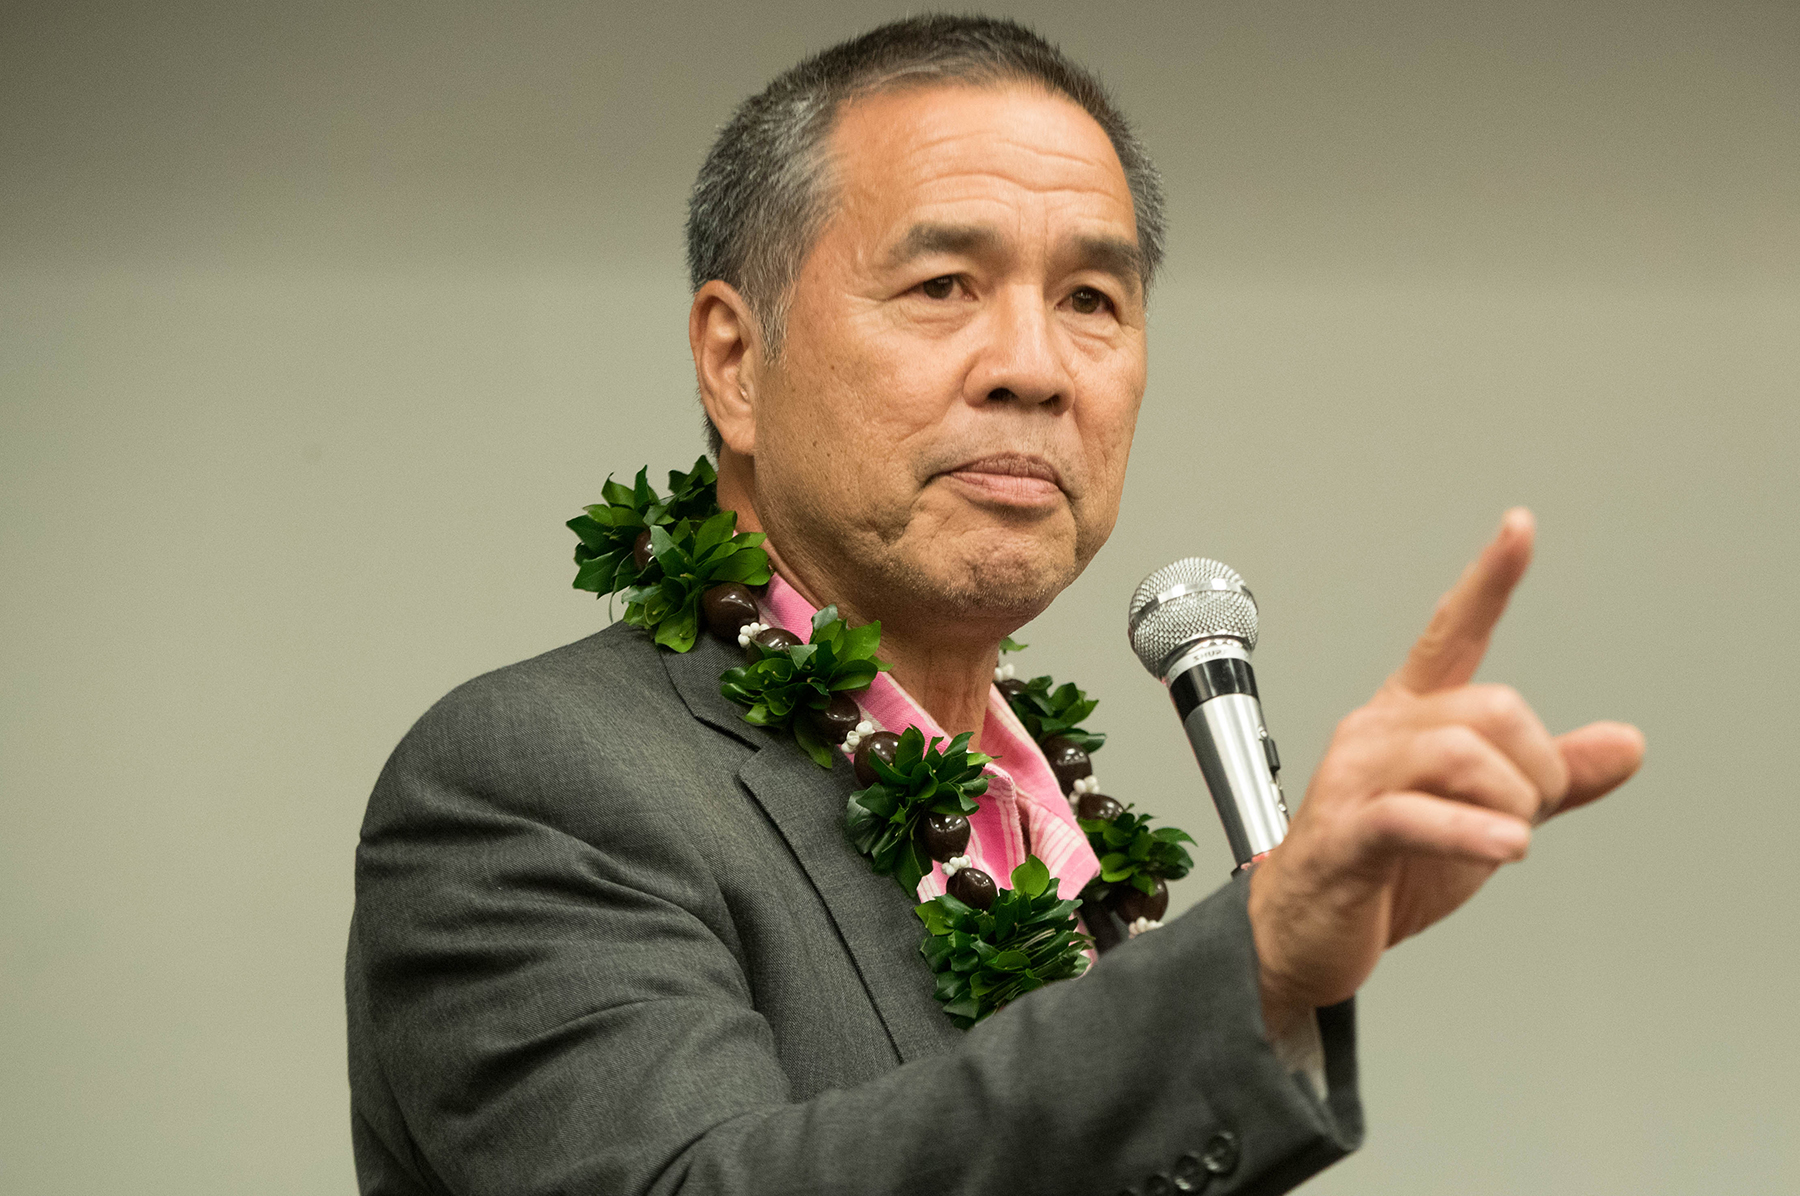 Ige Appoints Clayton Hee To Parole Board - Honolulu Civil Beat